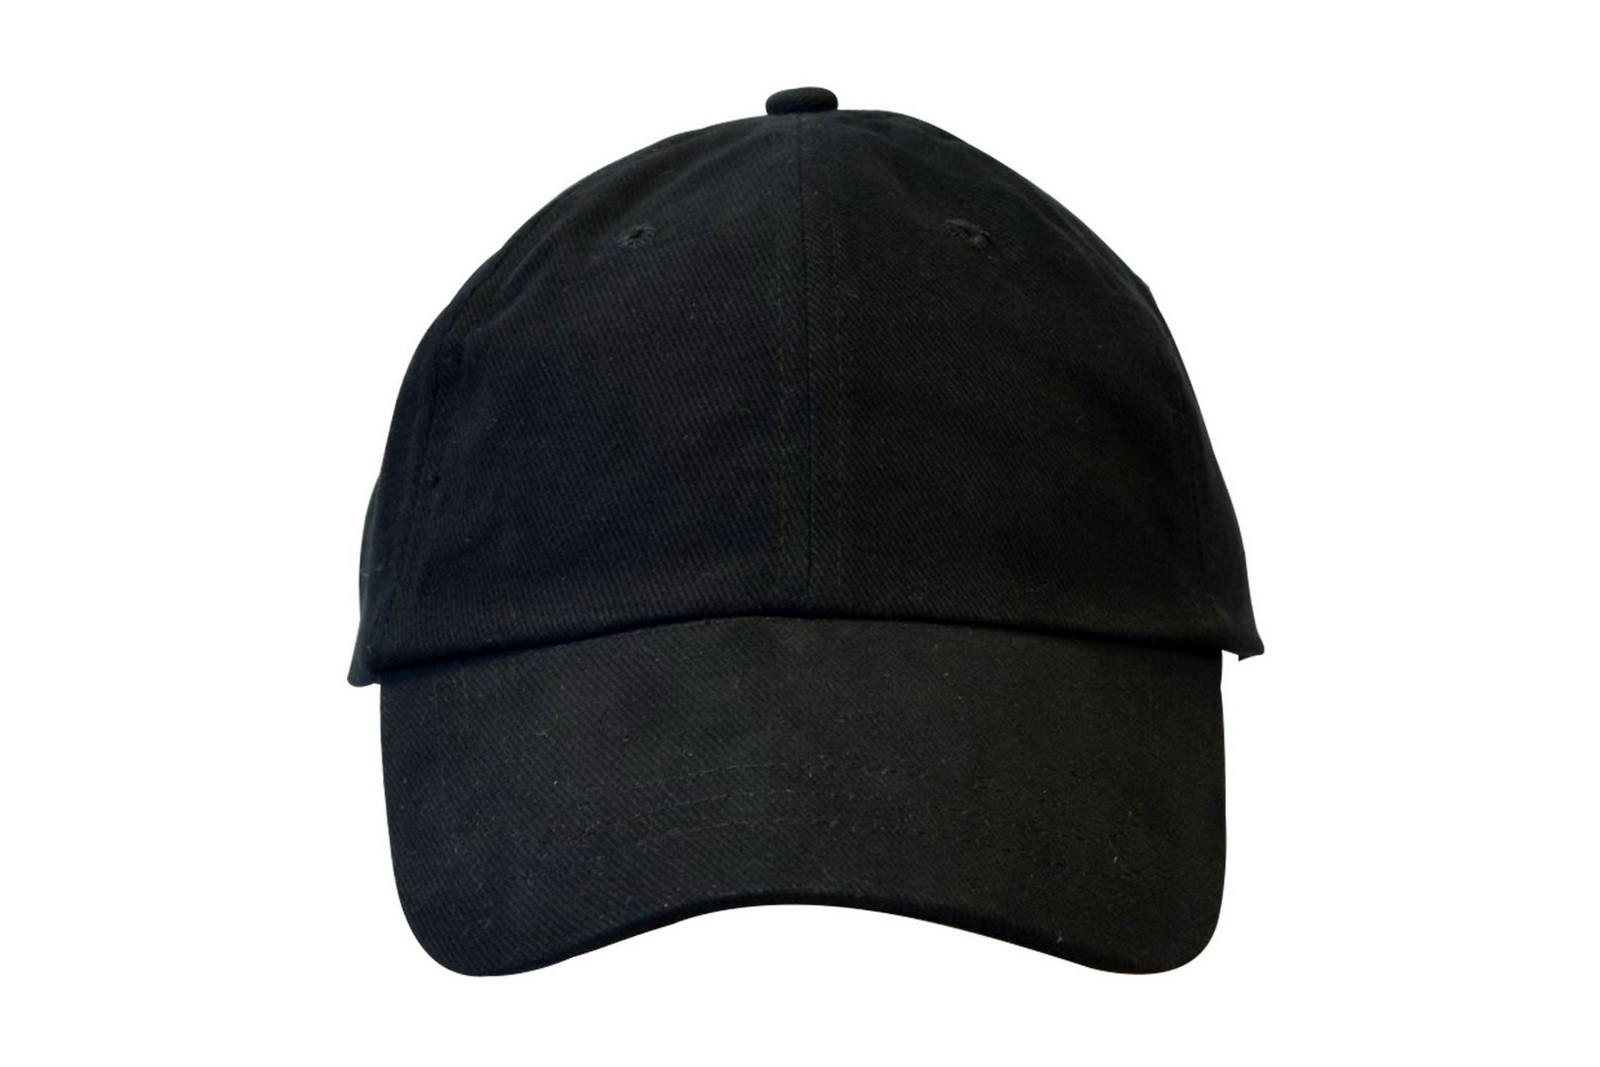 plain baseball caps with 322096251673 on KNS0879 0001 further 140814488506 together with 2316763 moreover Nylon Sashes likewise Dsline Baseball Cap Black Suede Gold.